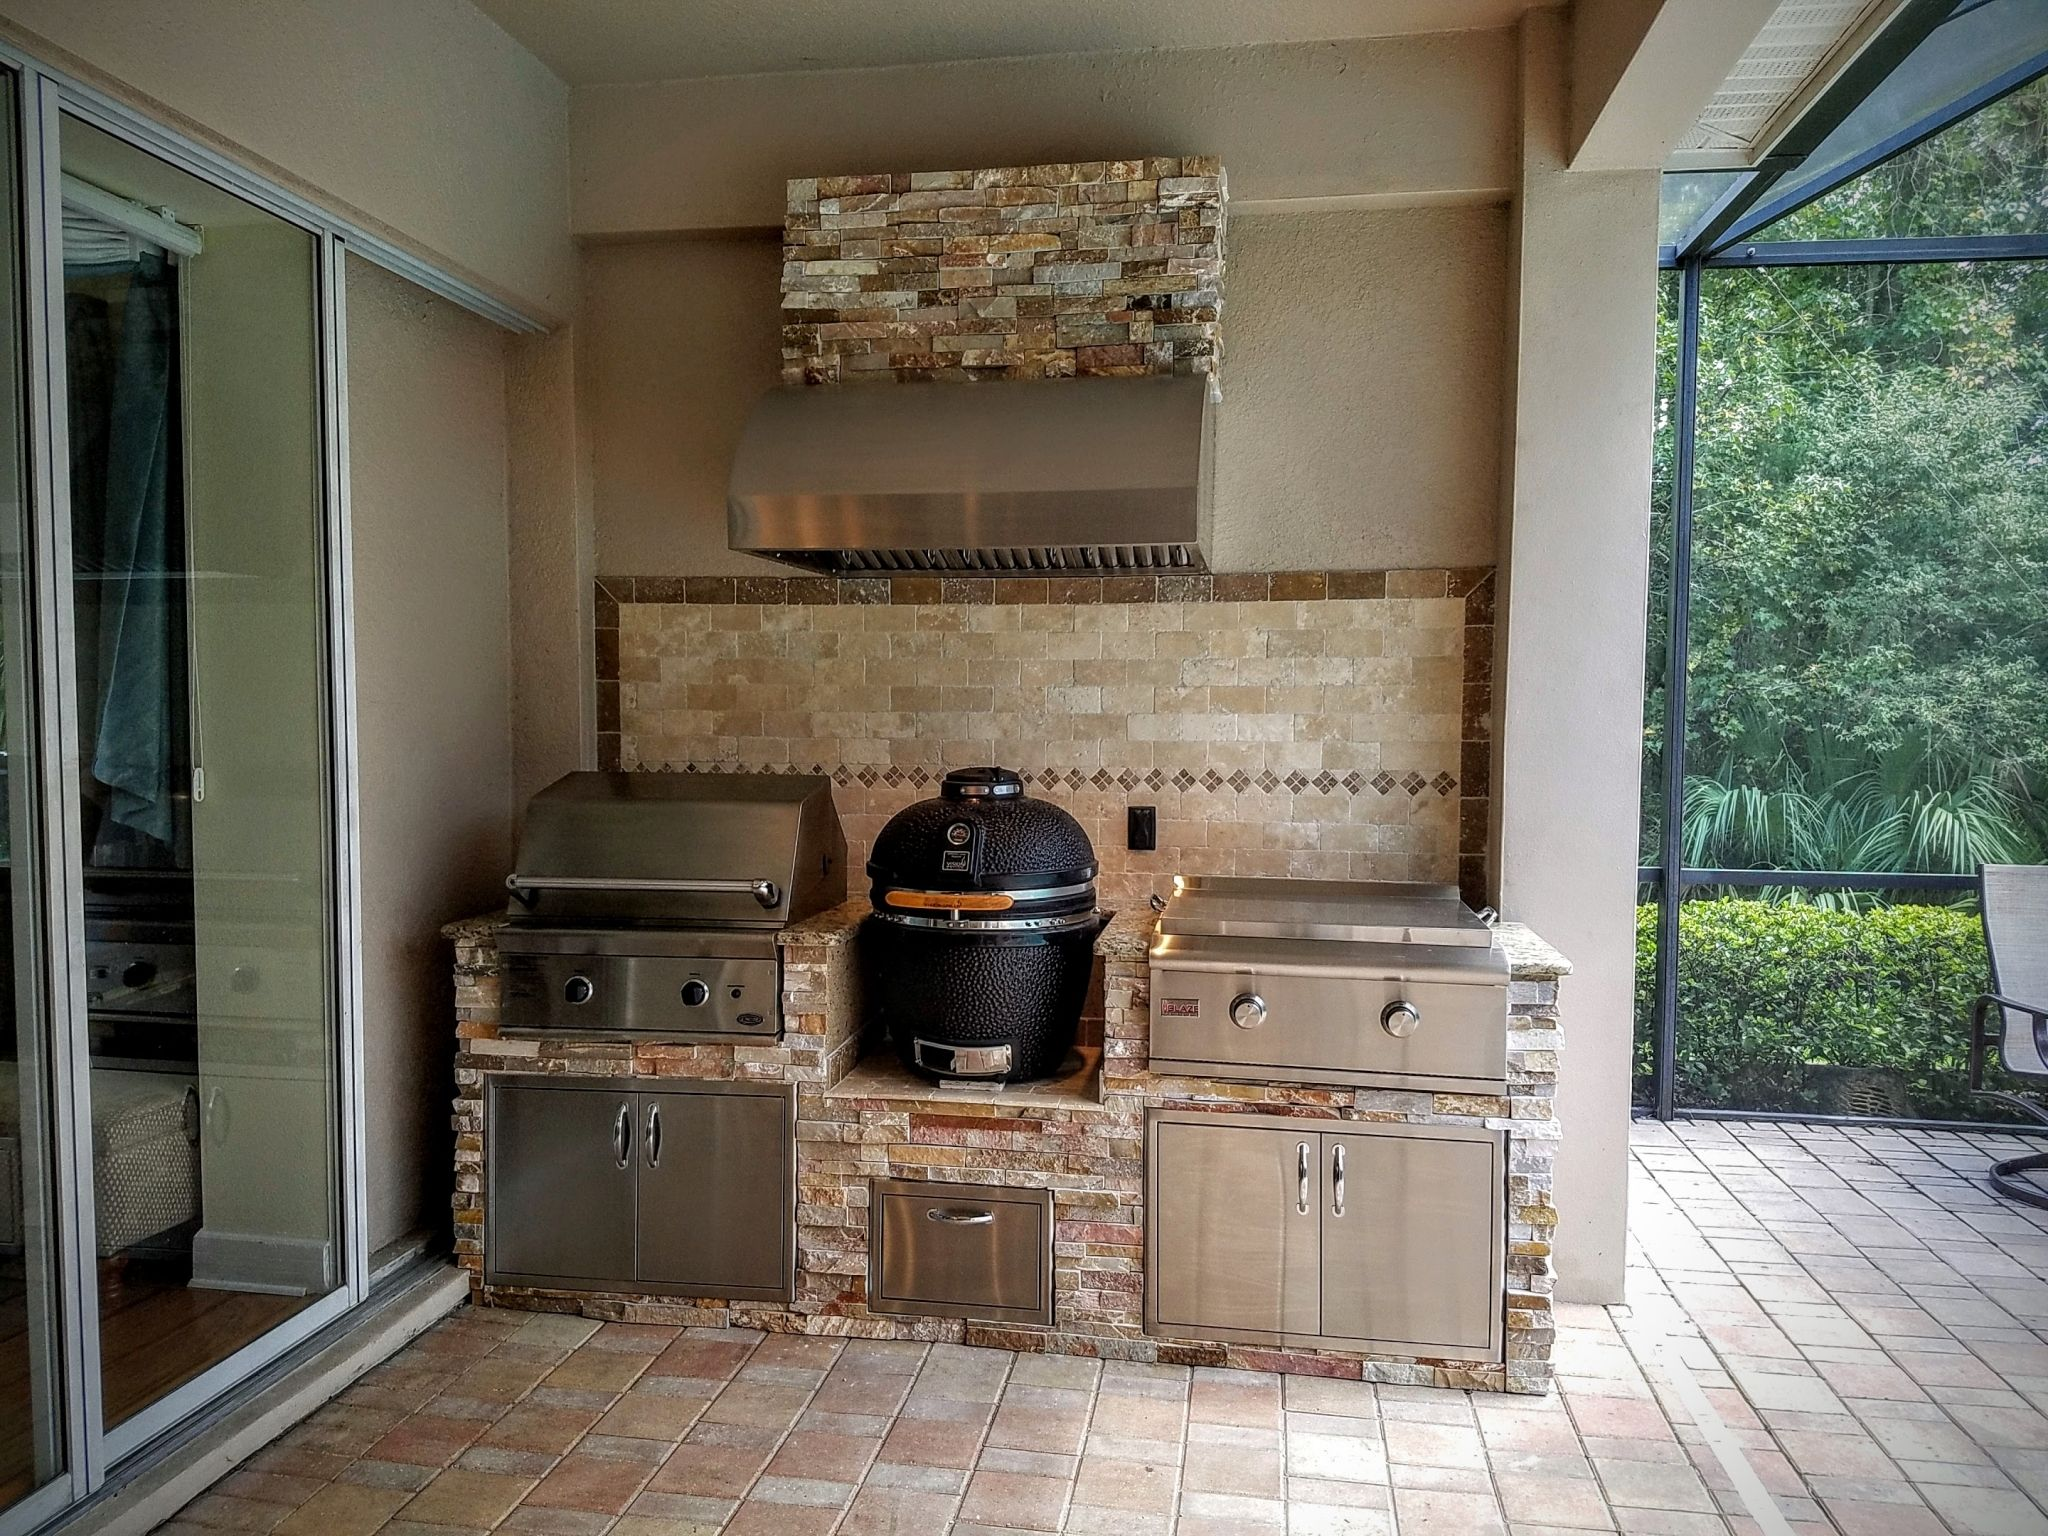 Outdoor Kitchen Exhaust Hoods Best Paint For Interior Check More At Http Www Mtbasics Com Outd Outdoor Kitchen Design Outdoor Kitchen Decor Outdoor Kitchen